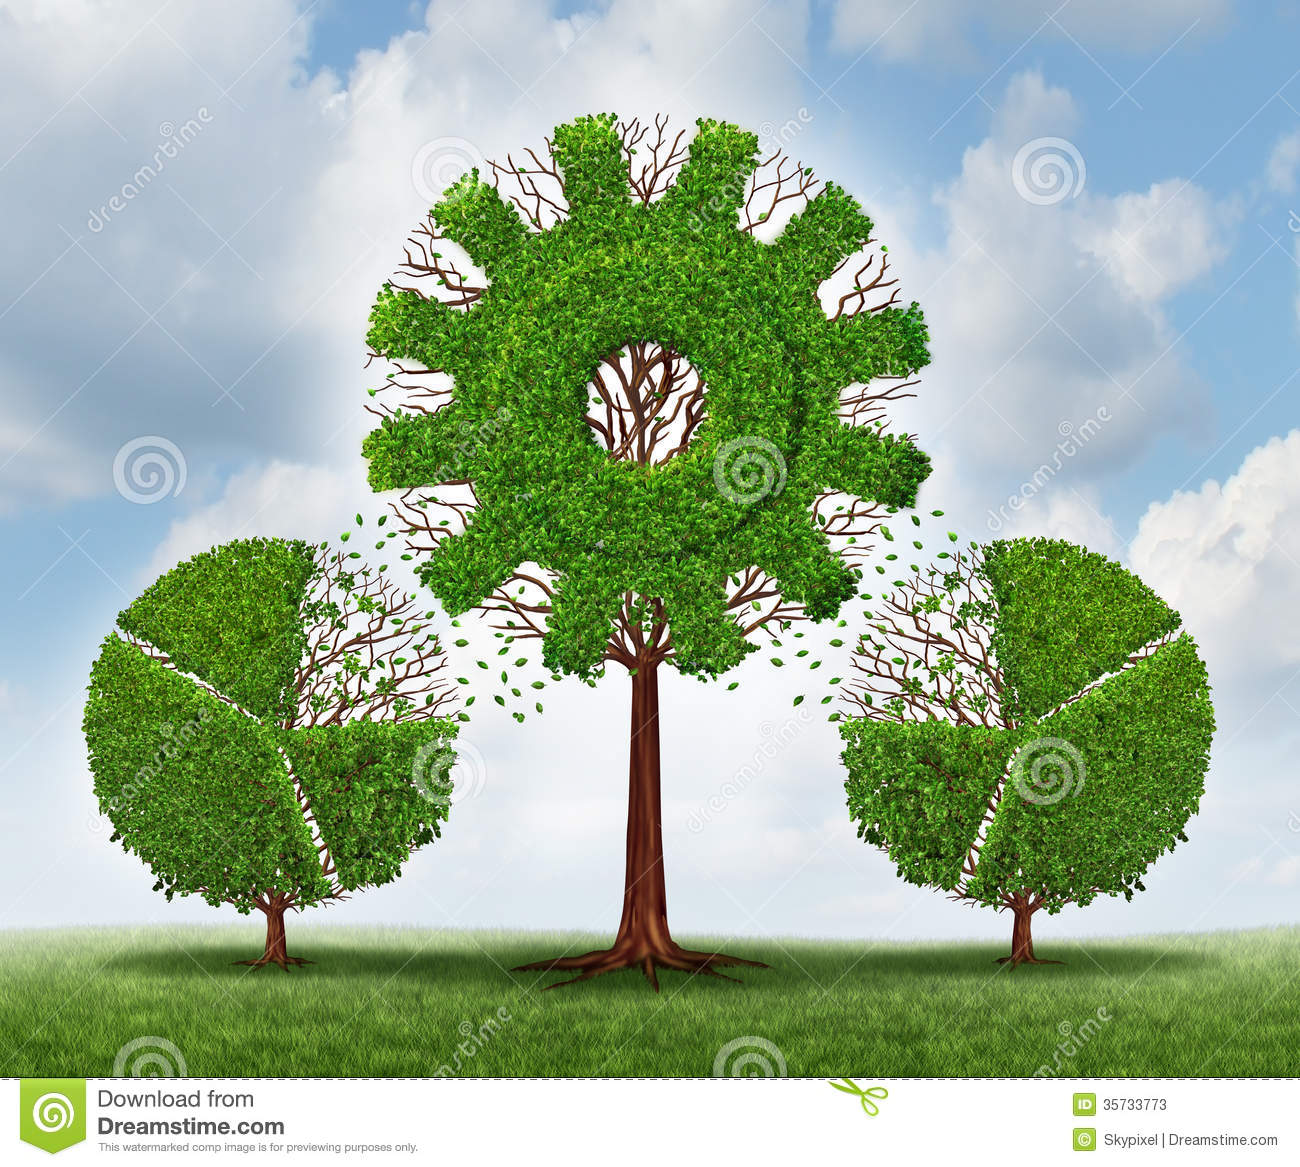 Finance Tree: Investing In A Business Stock Illustration. Image Of